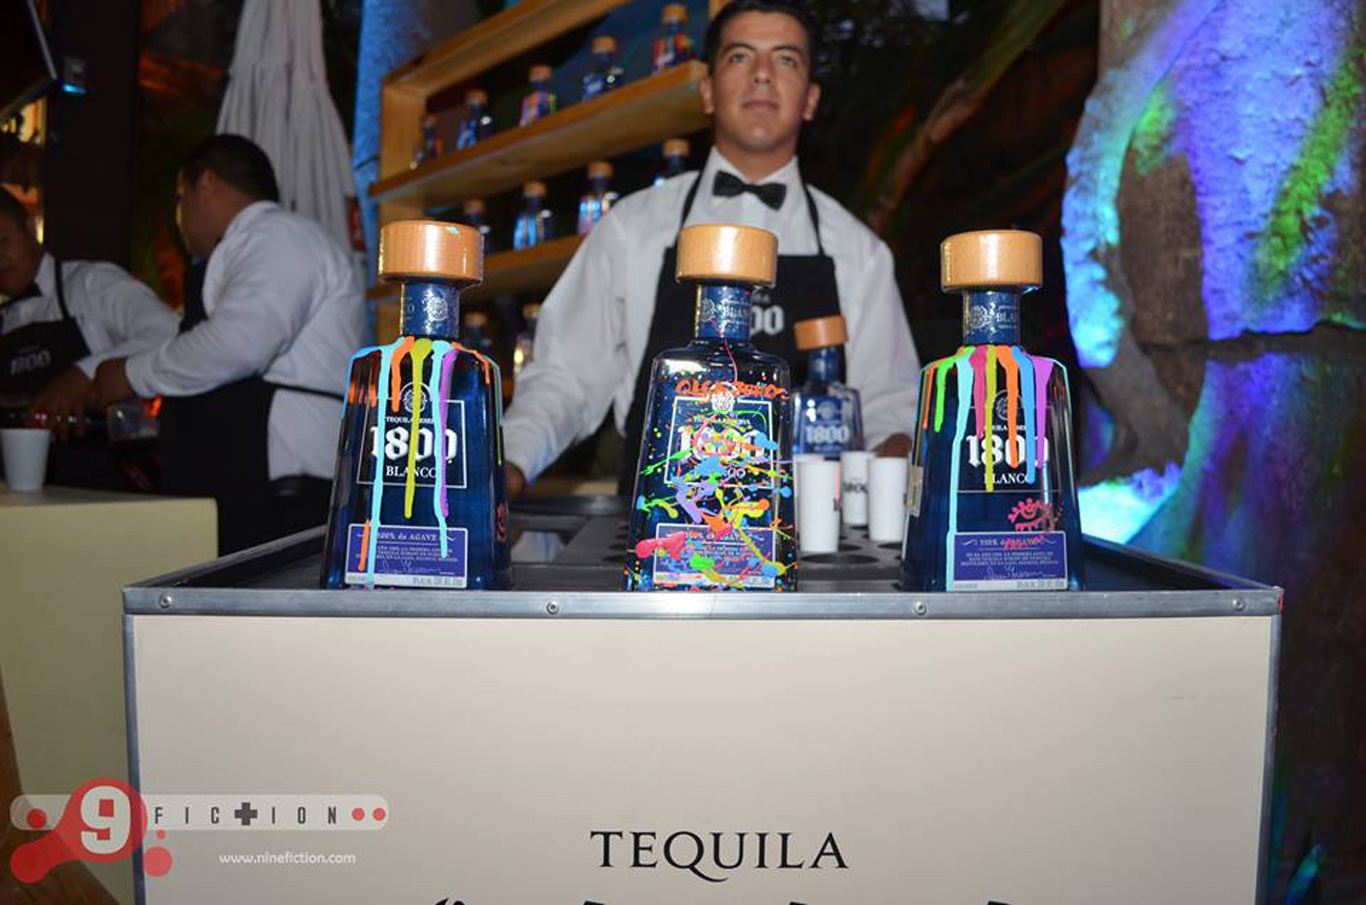 TEQUILA-1800 (1)